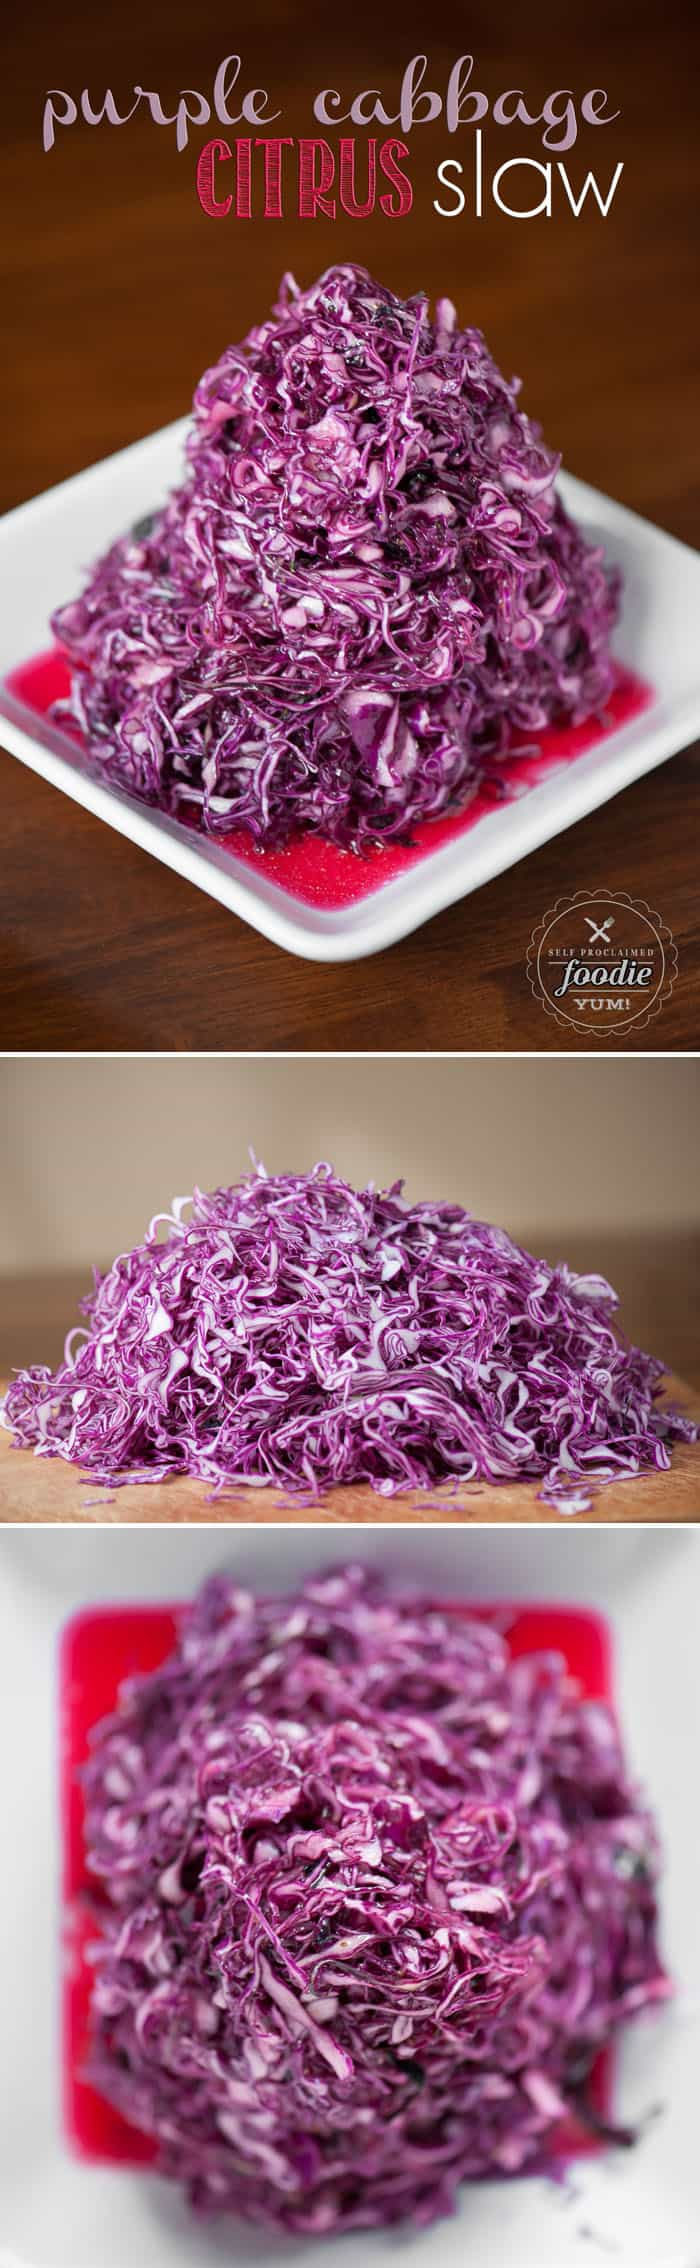 This light and fresh Purple Cabbage Citrus Slaw made without mayonnaise is the perfect healthy side dish. Its delicious and vibrant.